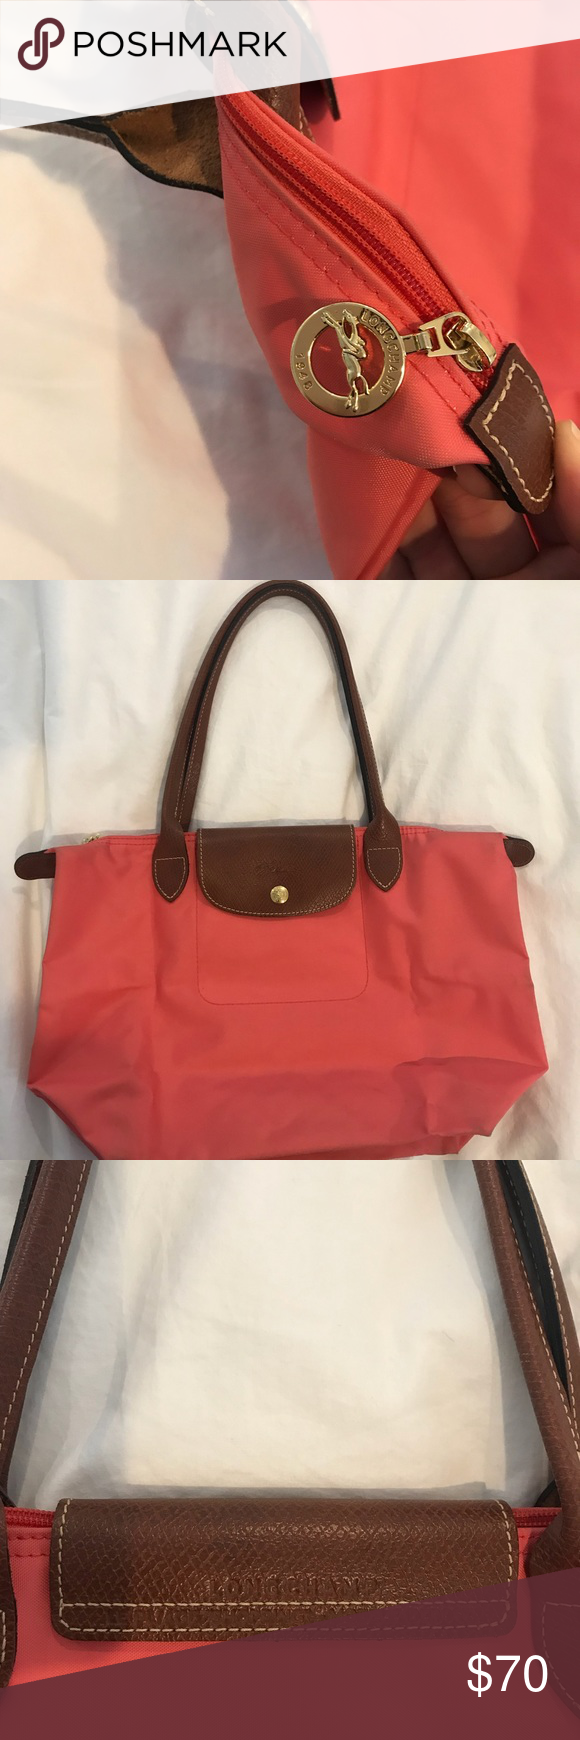 f251fe049c Flower (color) Le Pliage Small Handbag Salmon pink small long champ. Slight  use shown on corners otherwise perfect condition. Nylon with leather  details.